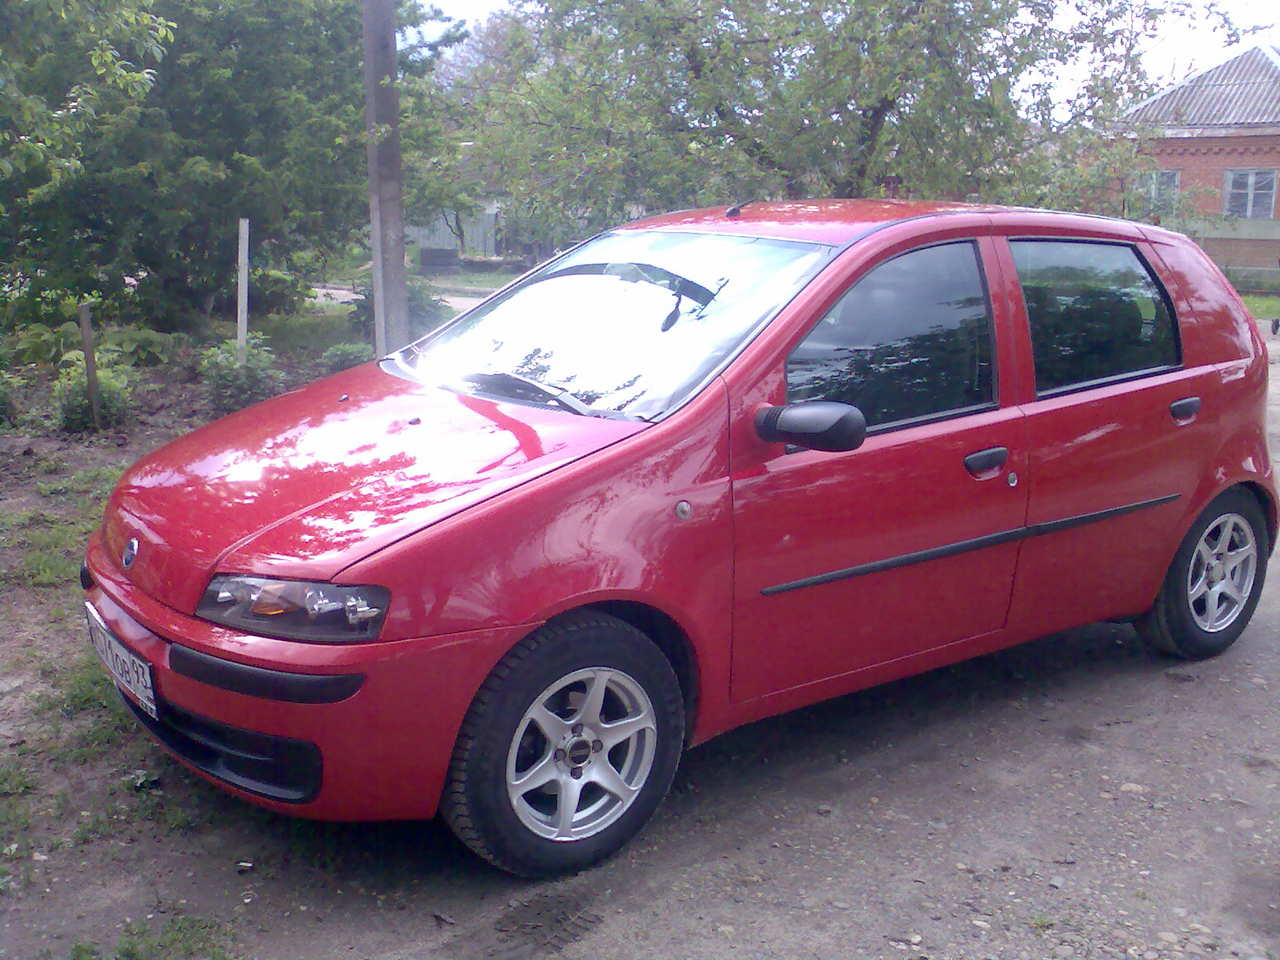 used 1999 fiat punto photos 1200cc gasoline ff manual for sale. Black Bedroom Furniture Sets. Home Design Ideas